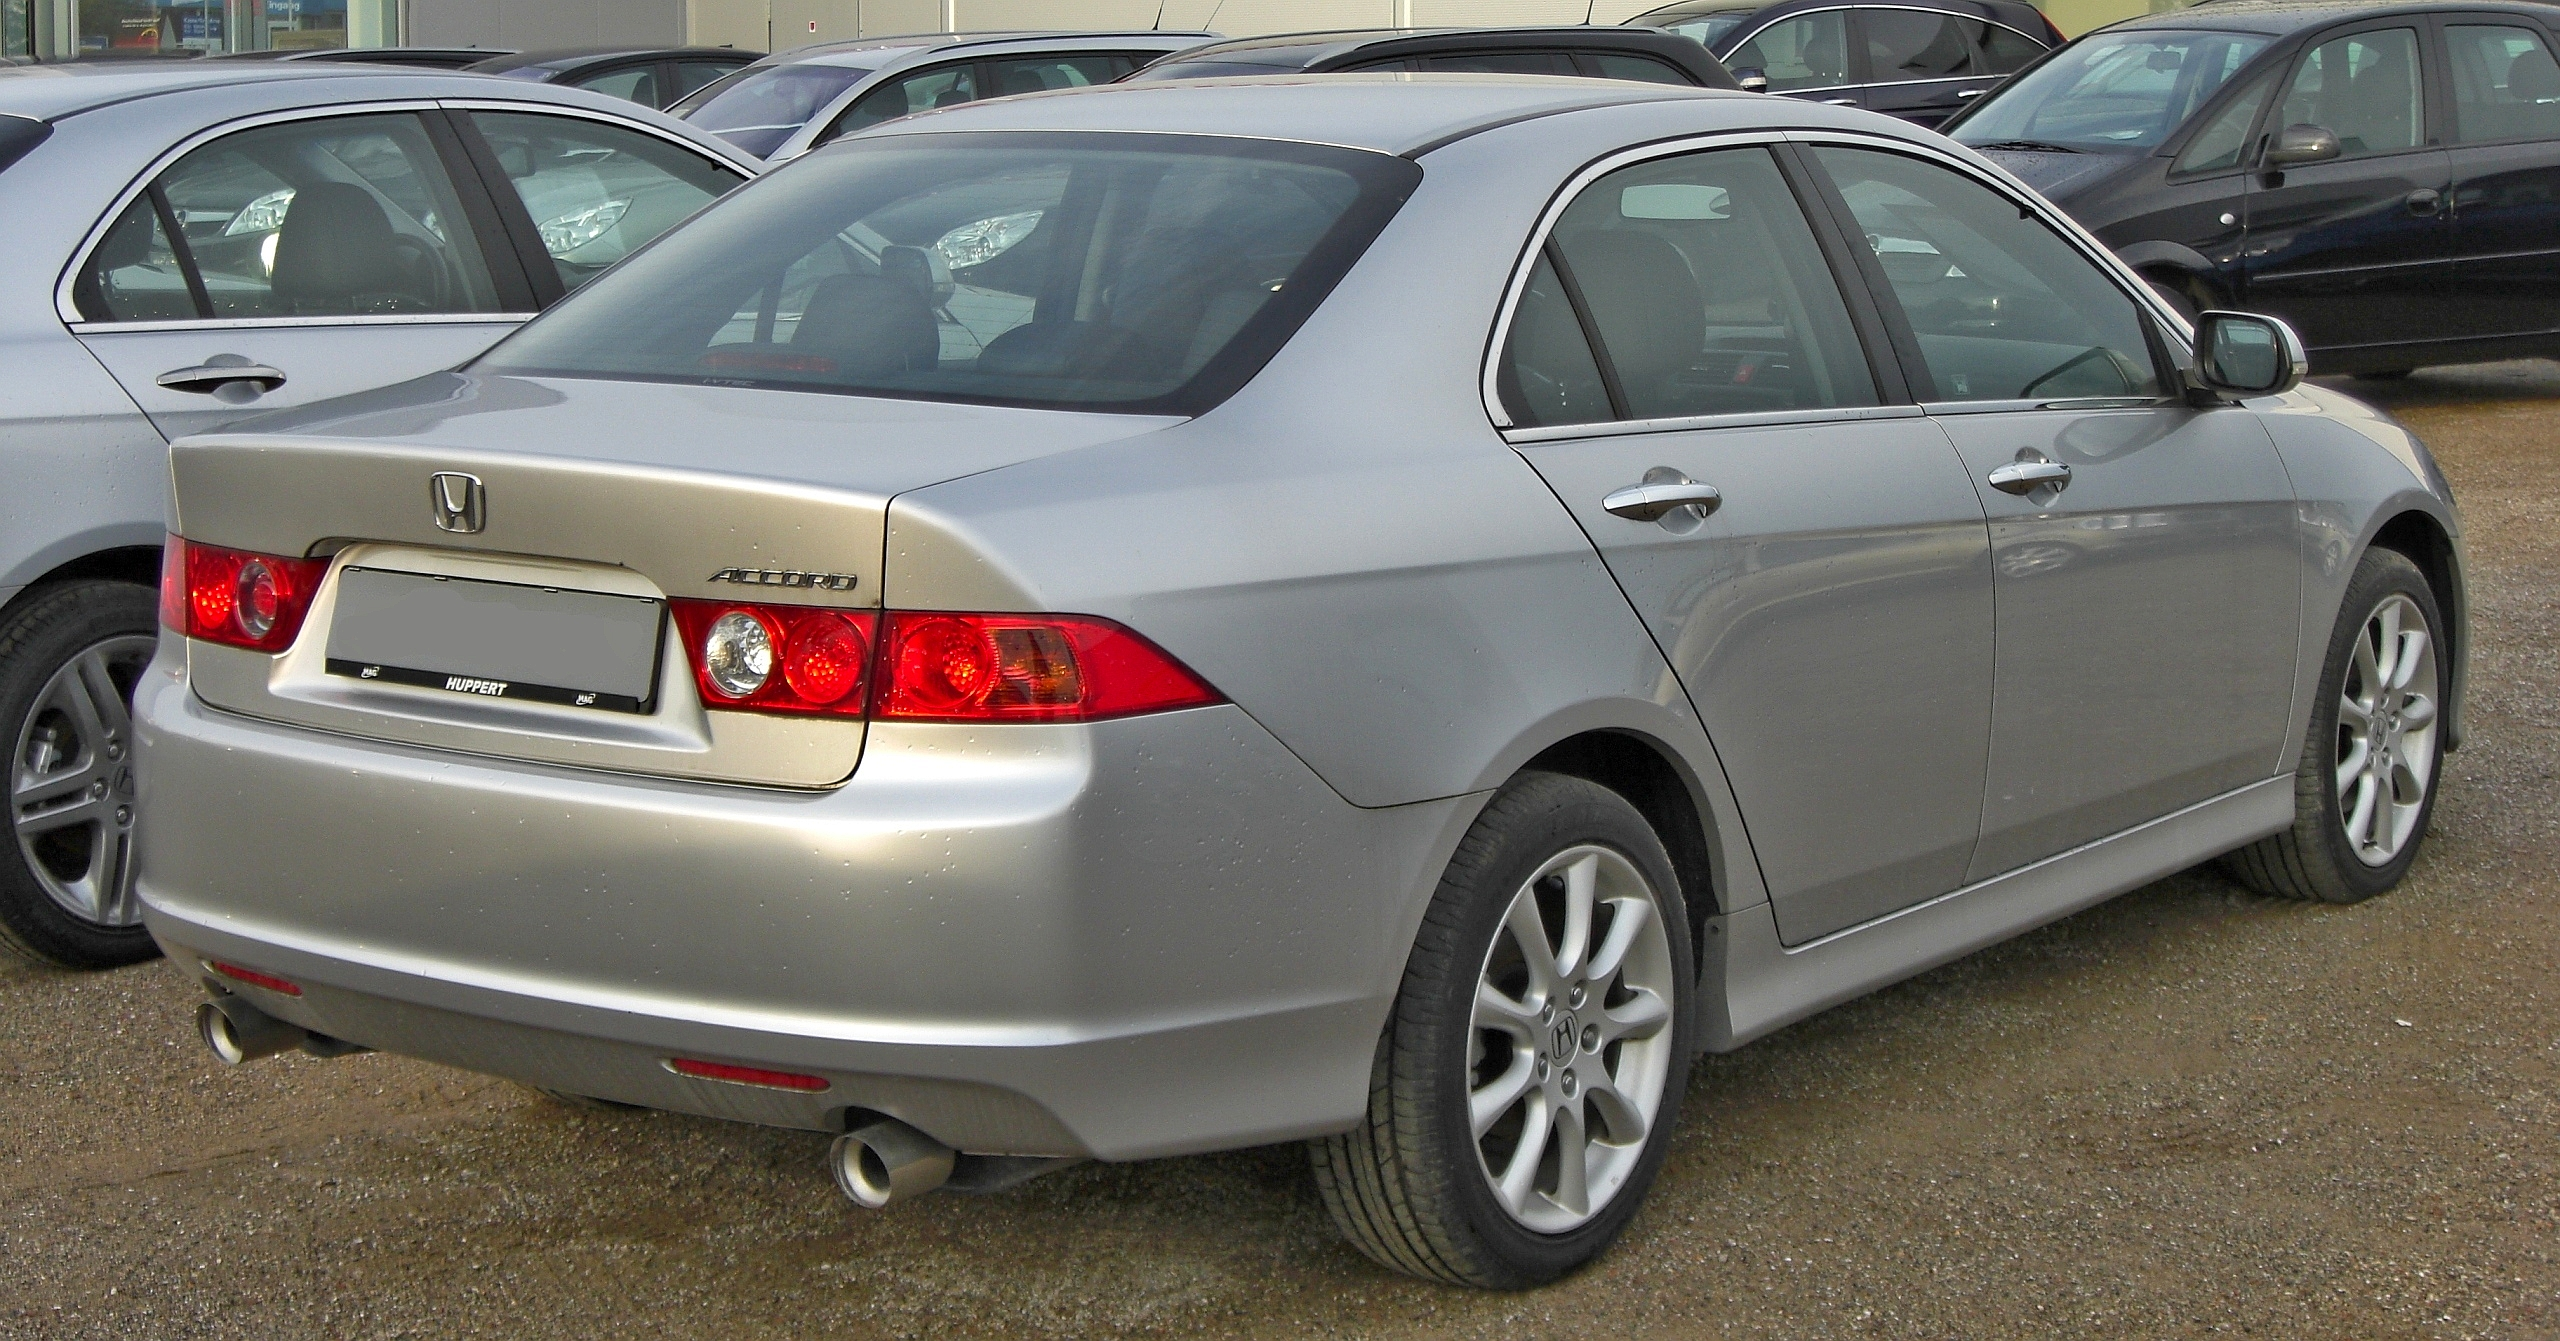 File:Honda Accord 2.4i Facelift rear-1.JPG - Wikimedia Commons